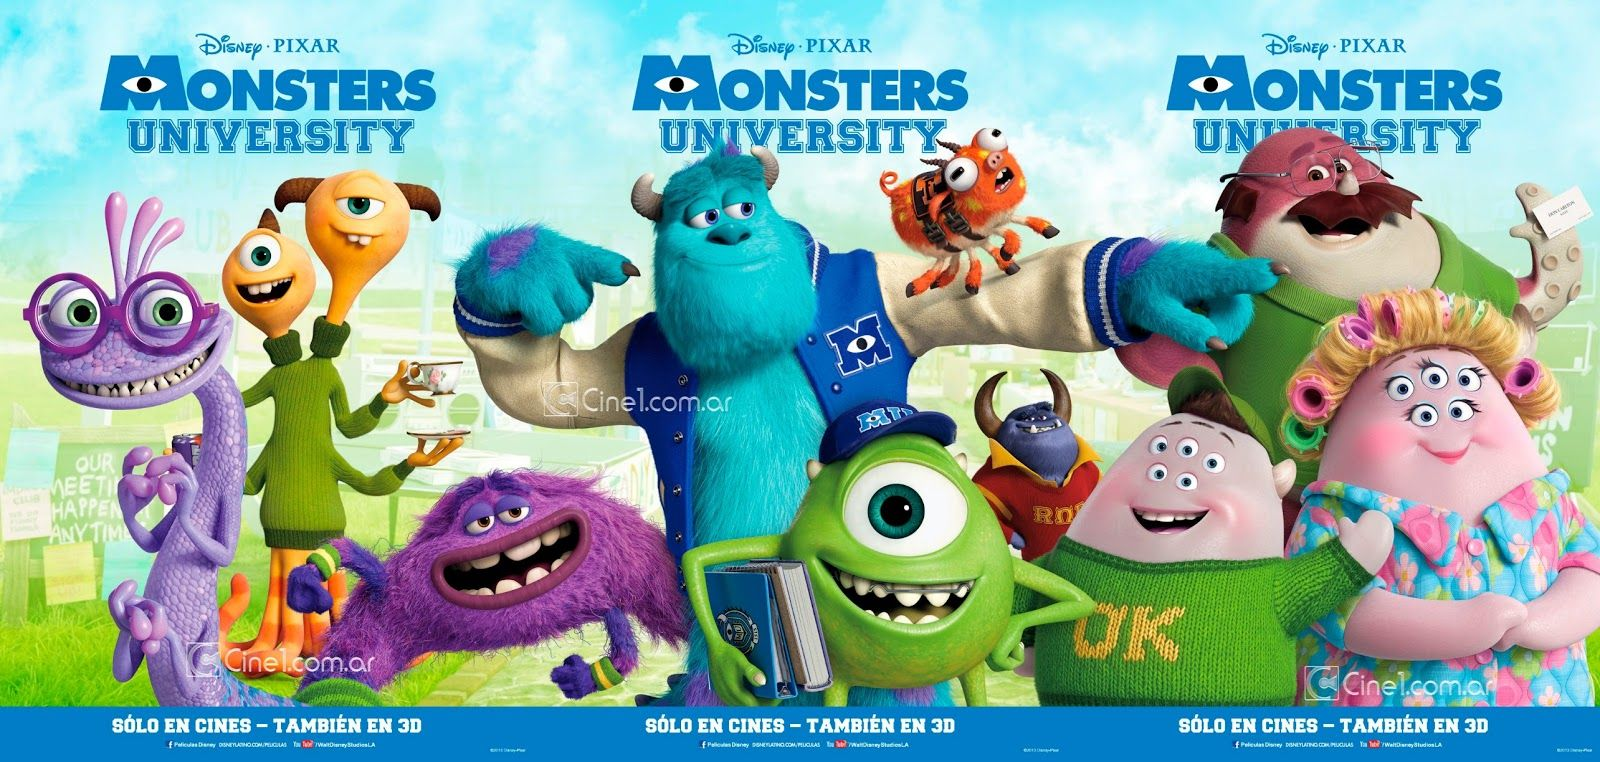 New Foreign Promotion For Pixar S Monsters University Monster University Kid Movies Disney Kid Movies